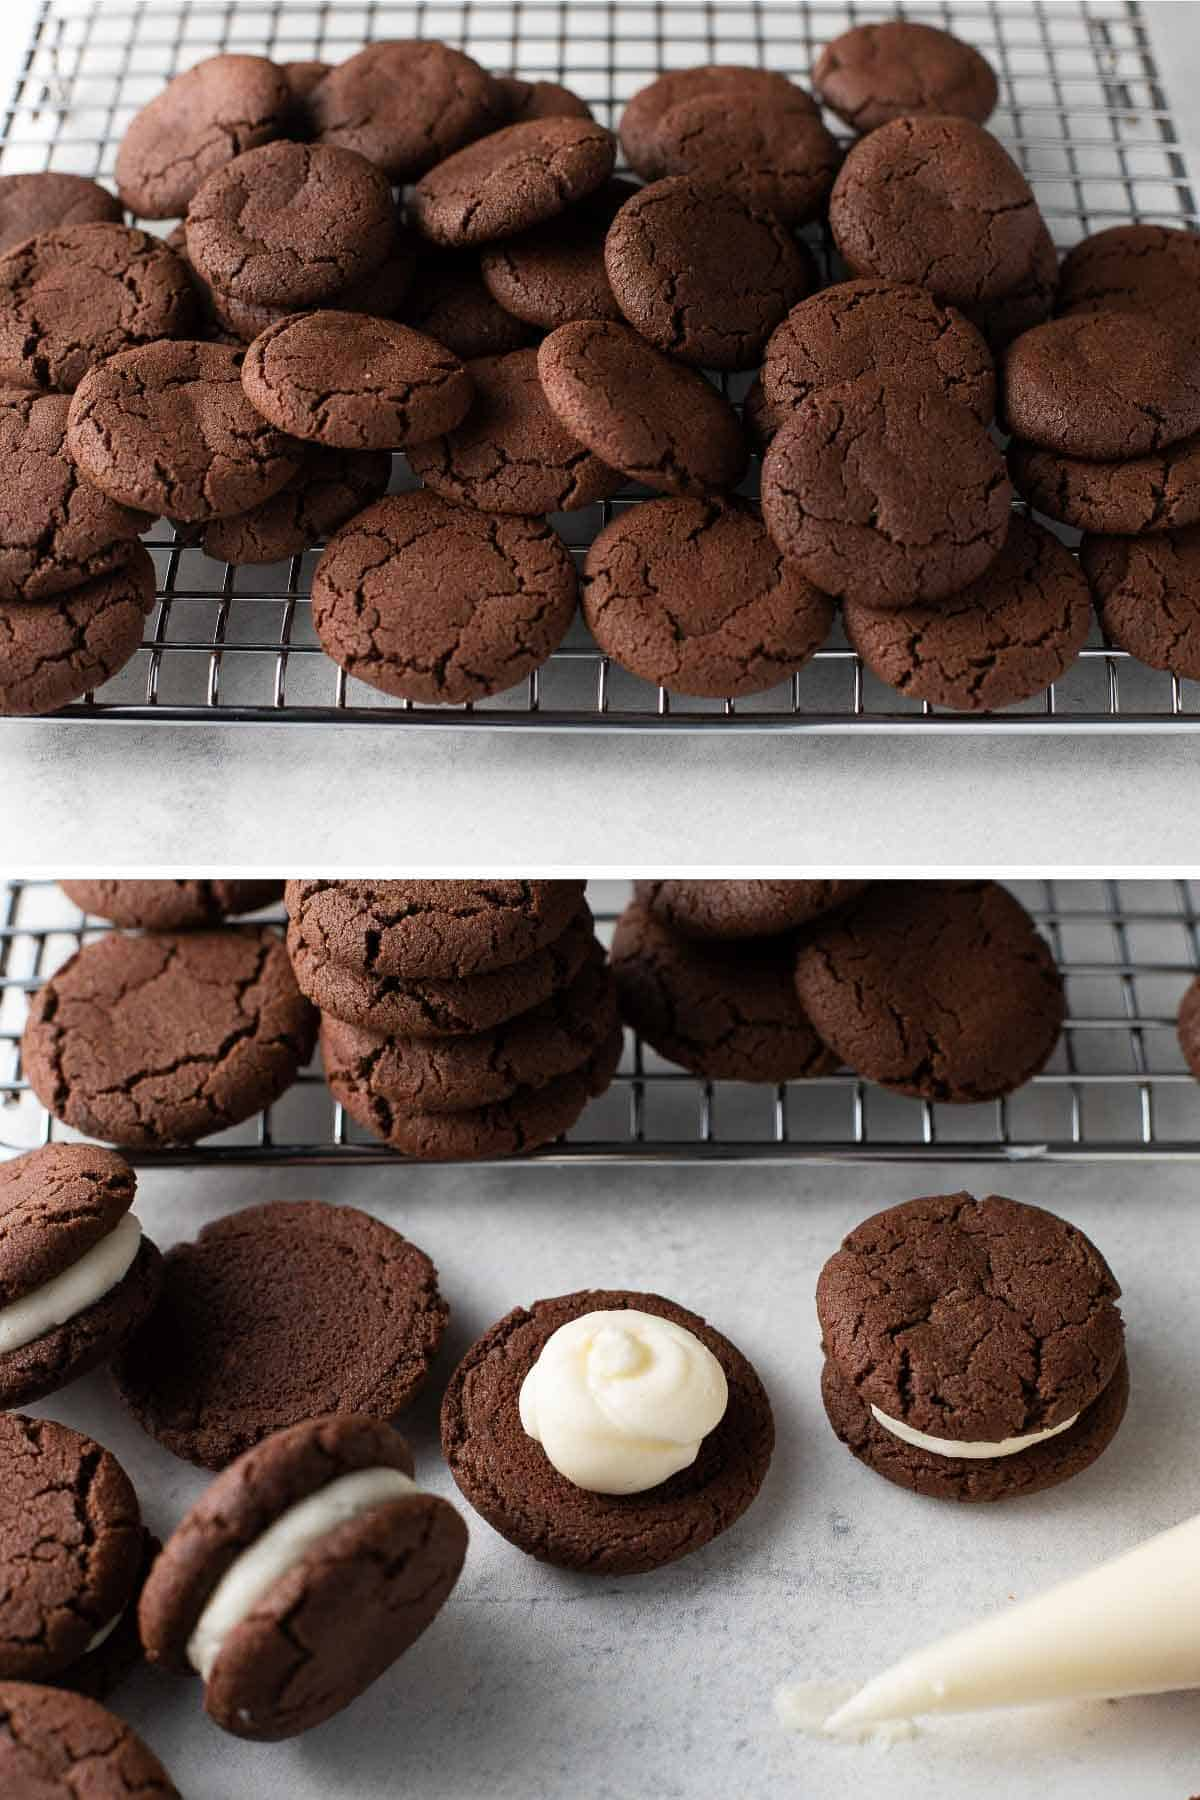 chocolate cookies on cooling rack and being filled with cream filling